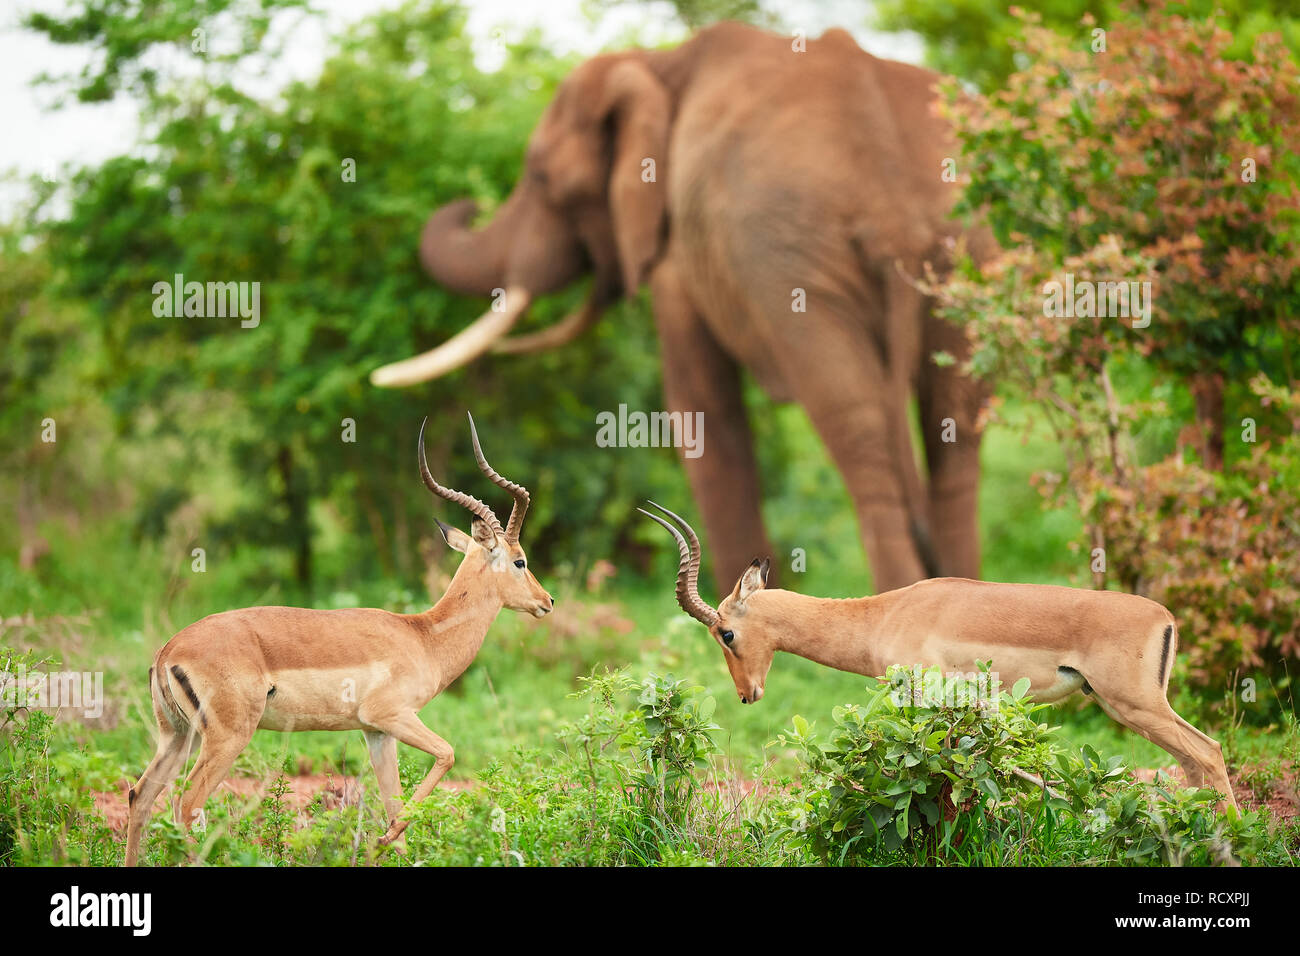 Impala squaring up in Kruger National Park - Stock Image